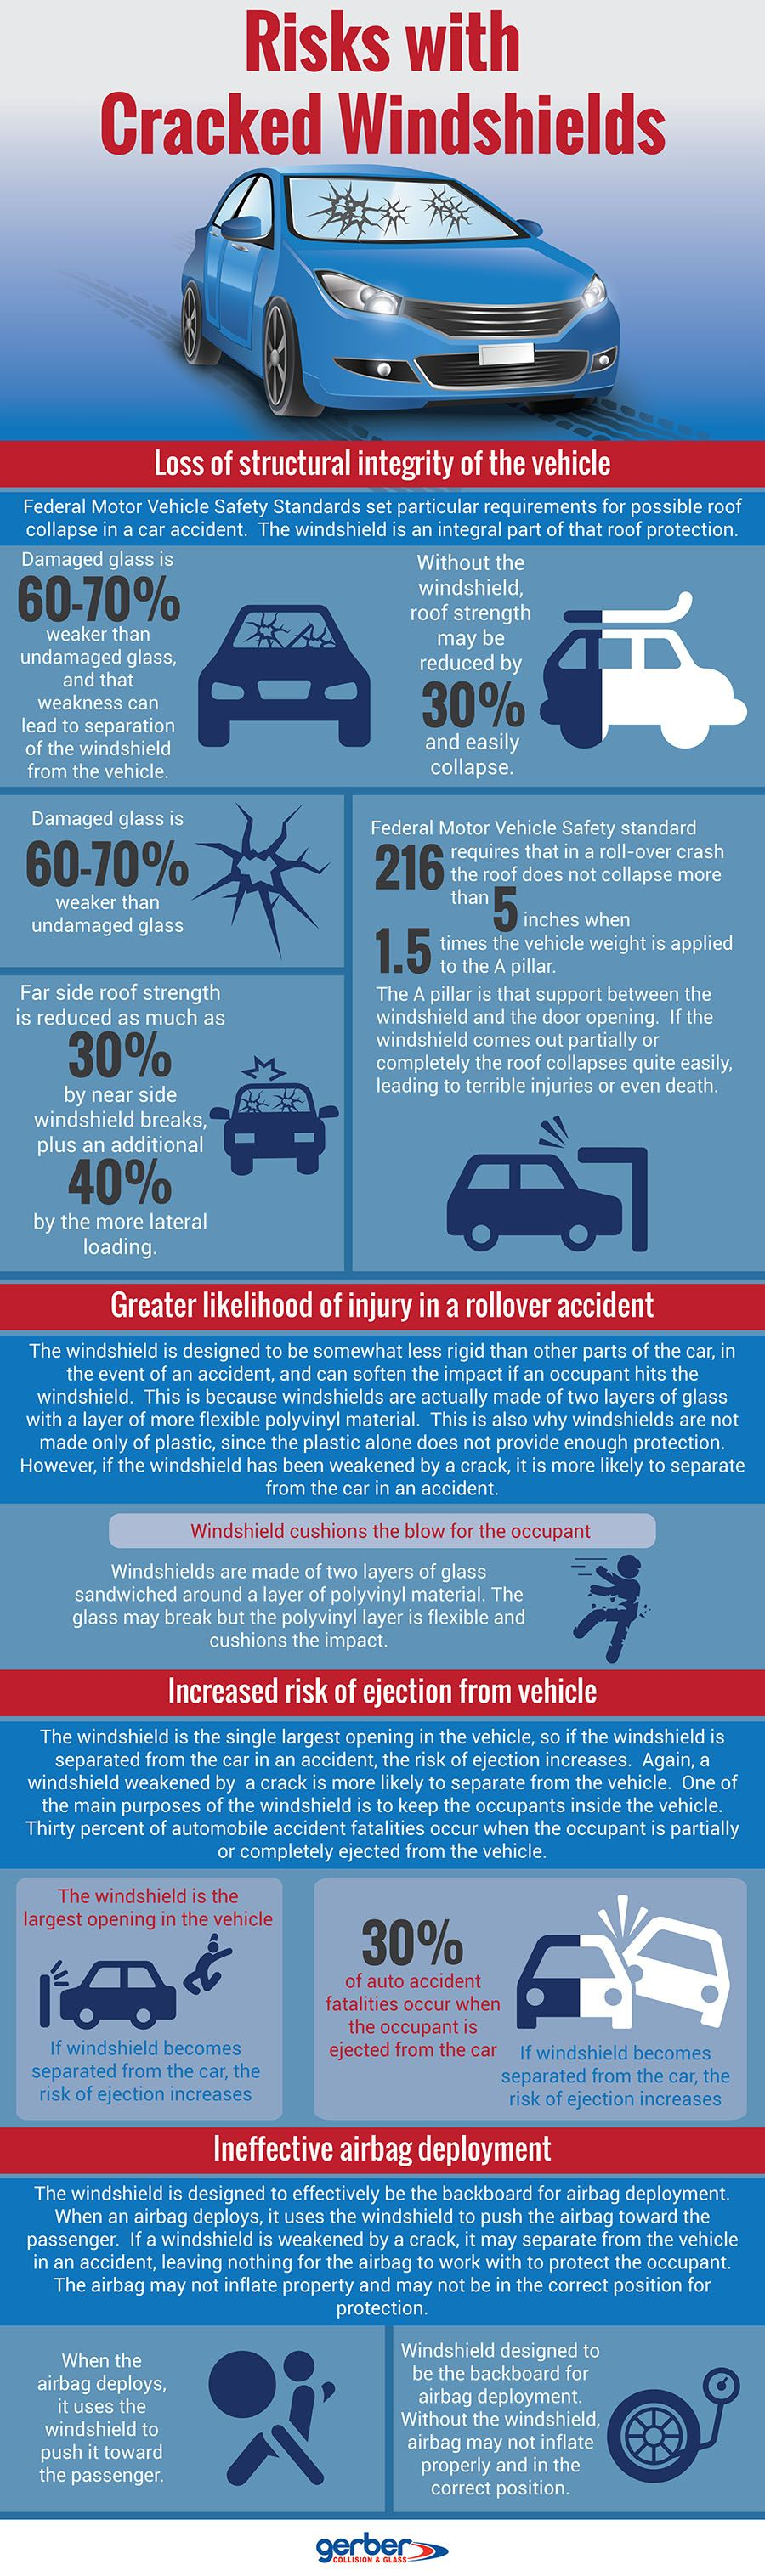 Risks with Cracked Windshields #infographic